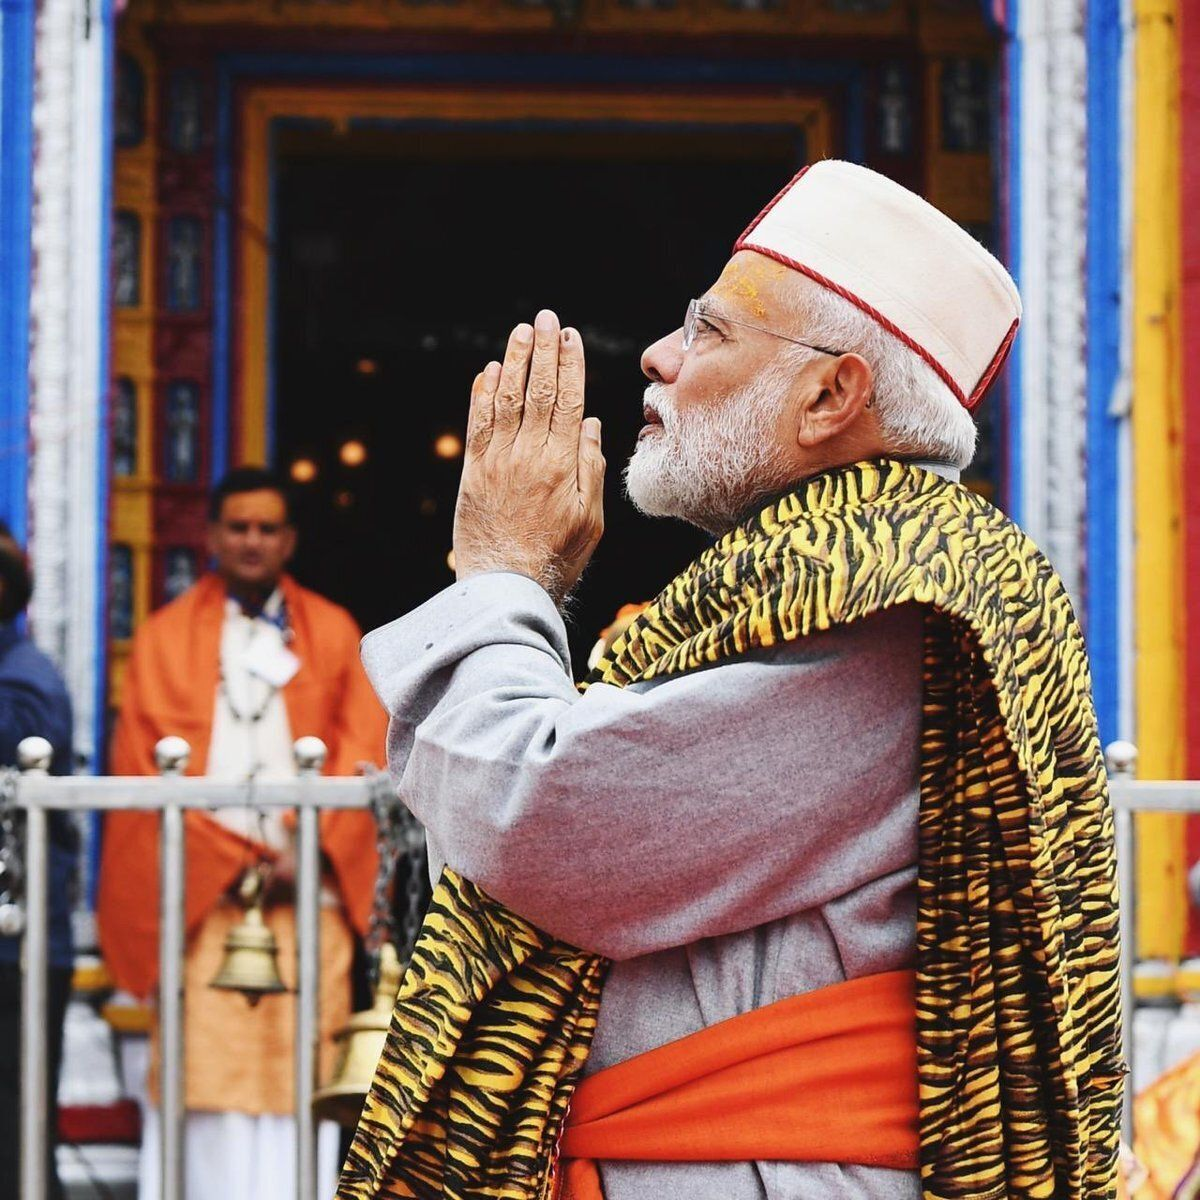 Narendra Modi's Kedarnath Yatra Violates Model Code Of Conduct: